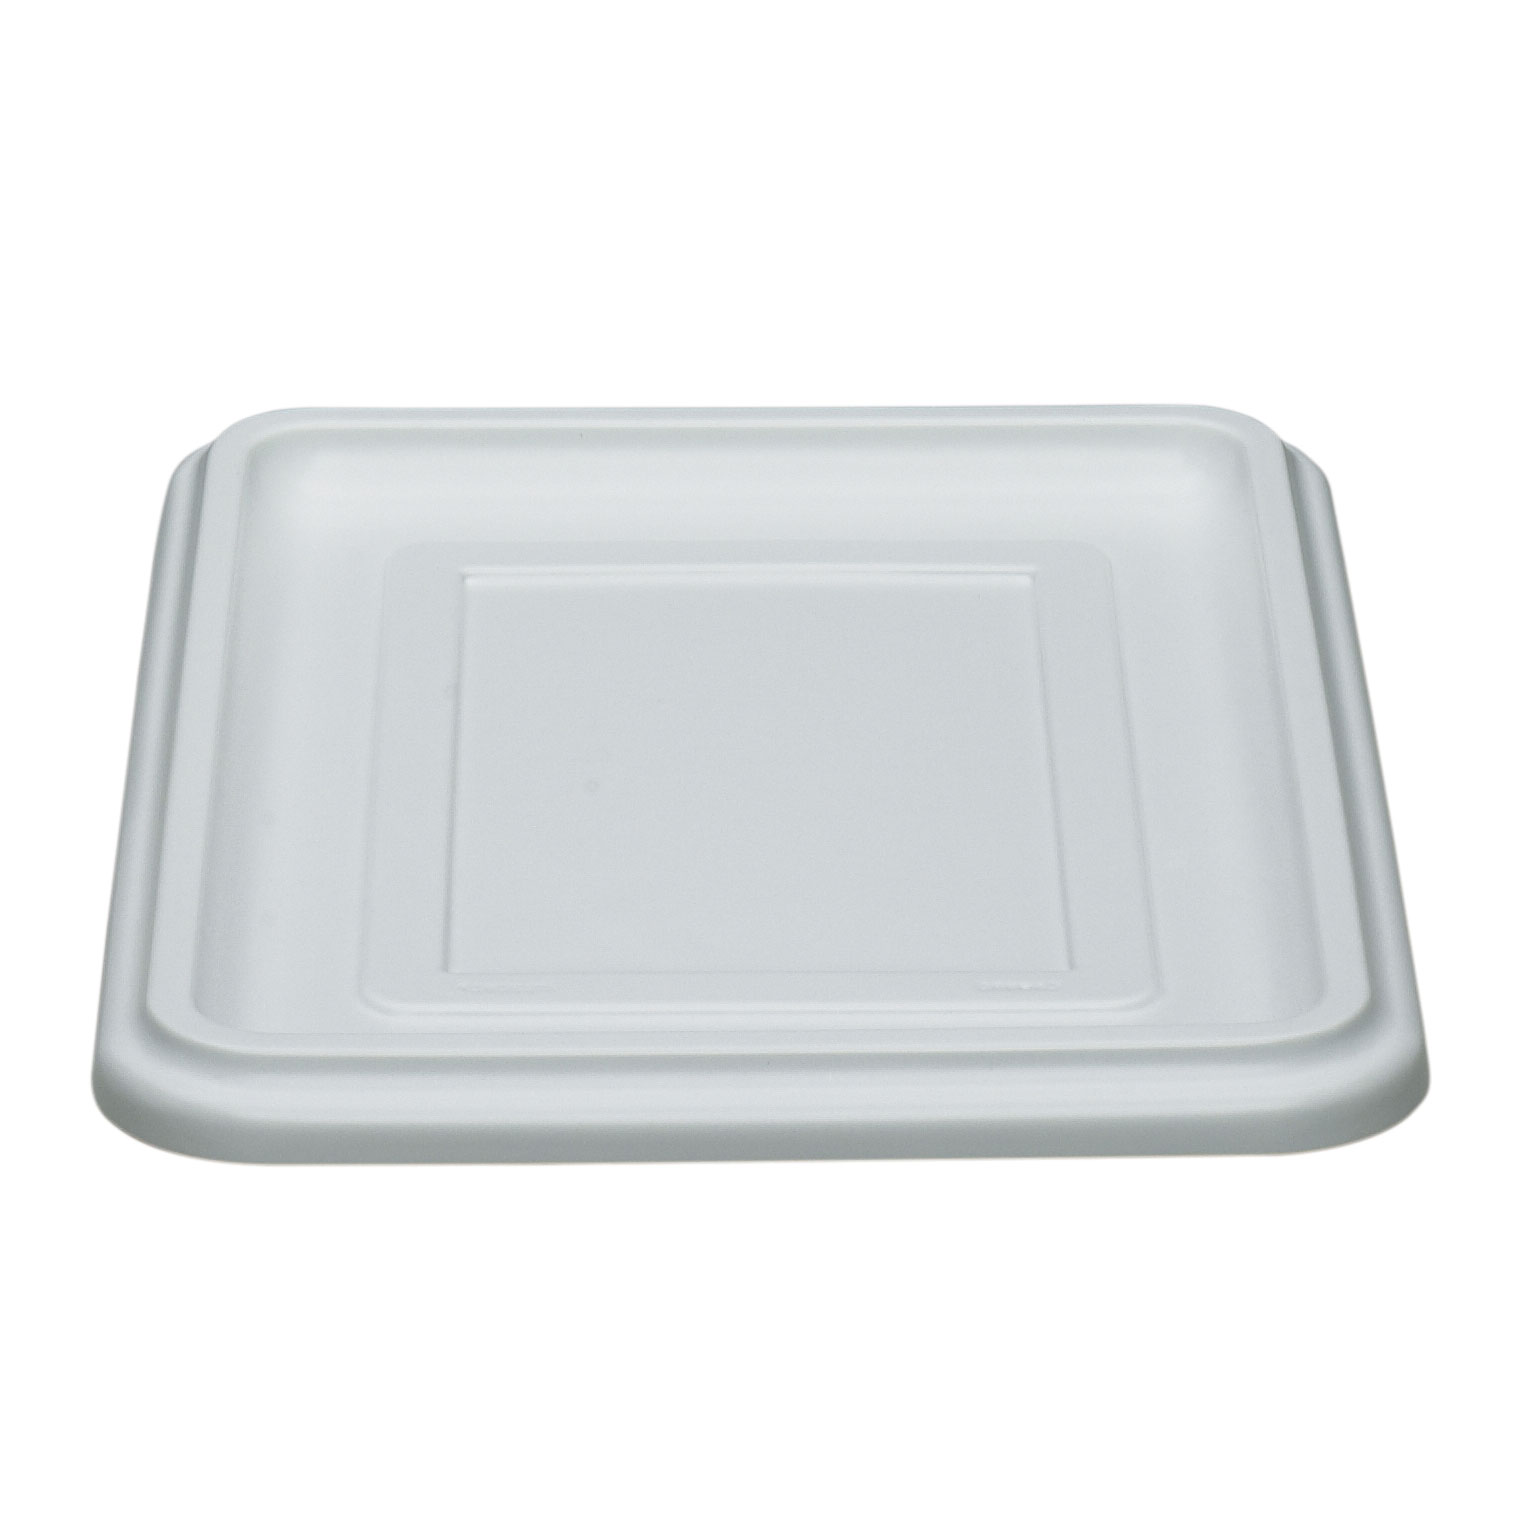 Cambro 1722CBCP148 bus boxes/flatware retrievers